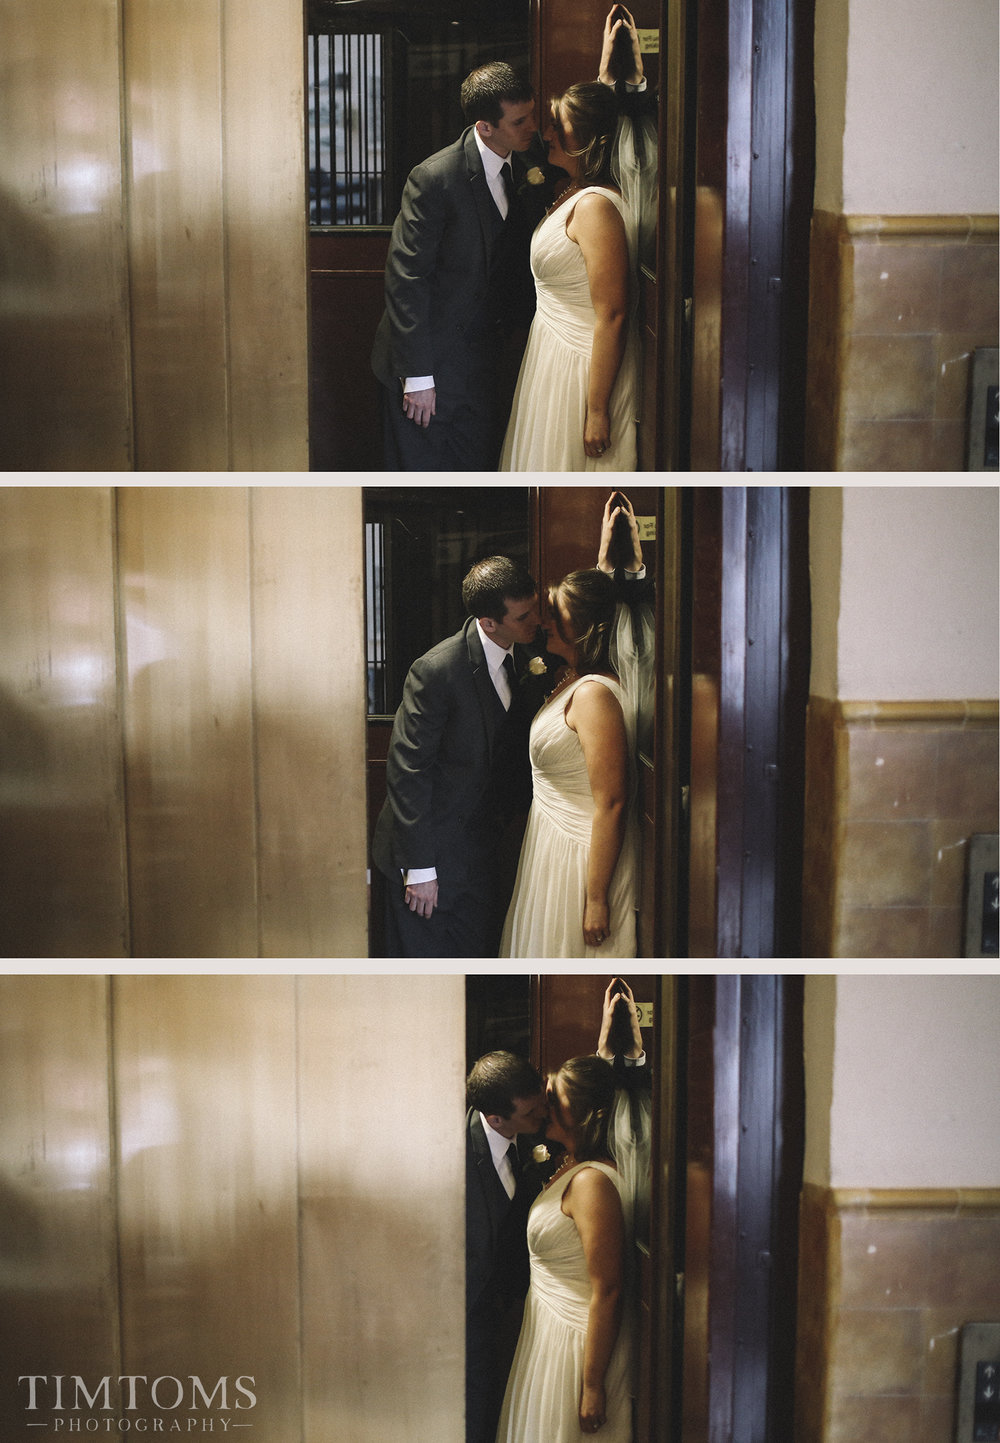 Bride and Groom in the Elevator Old hotel wedding